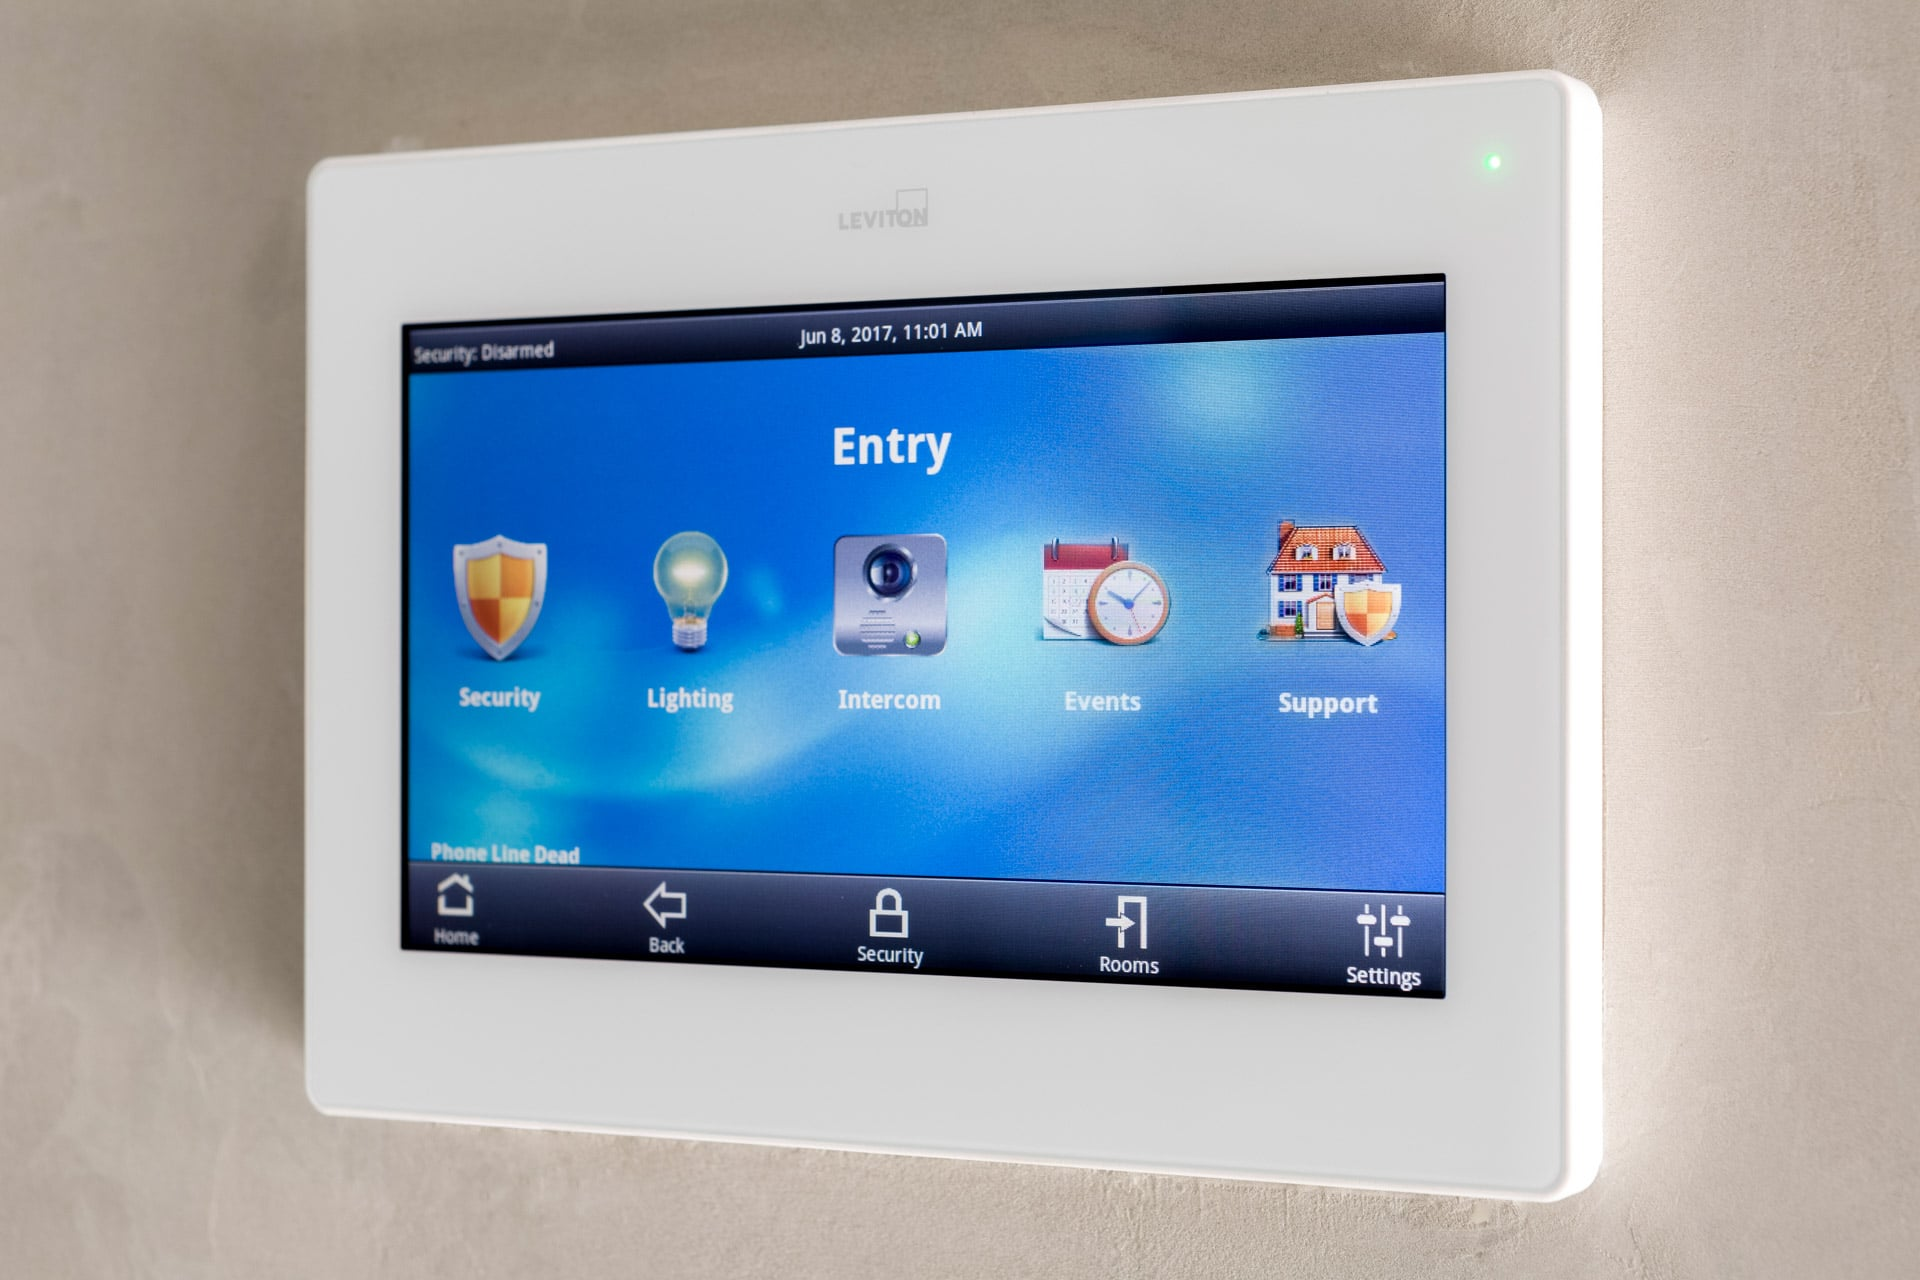 leviton home automation system control panel product photograph by roger thompson